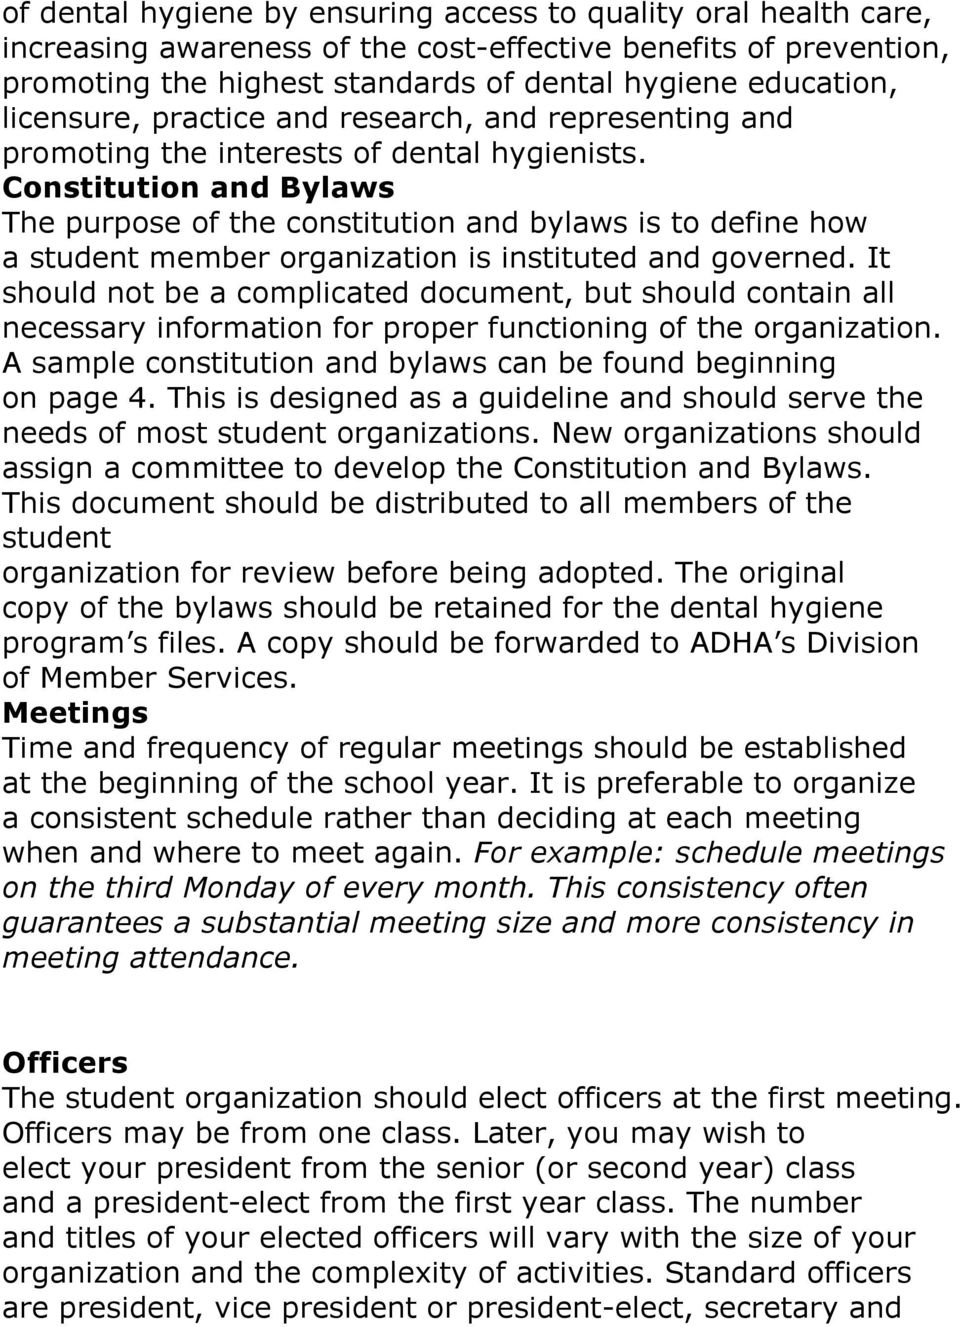 Constitution and Bylaws The purpose of the constitution and bylaws is to define how a student member organization is instituted and governed.